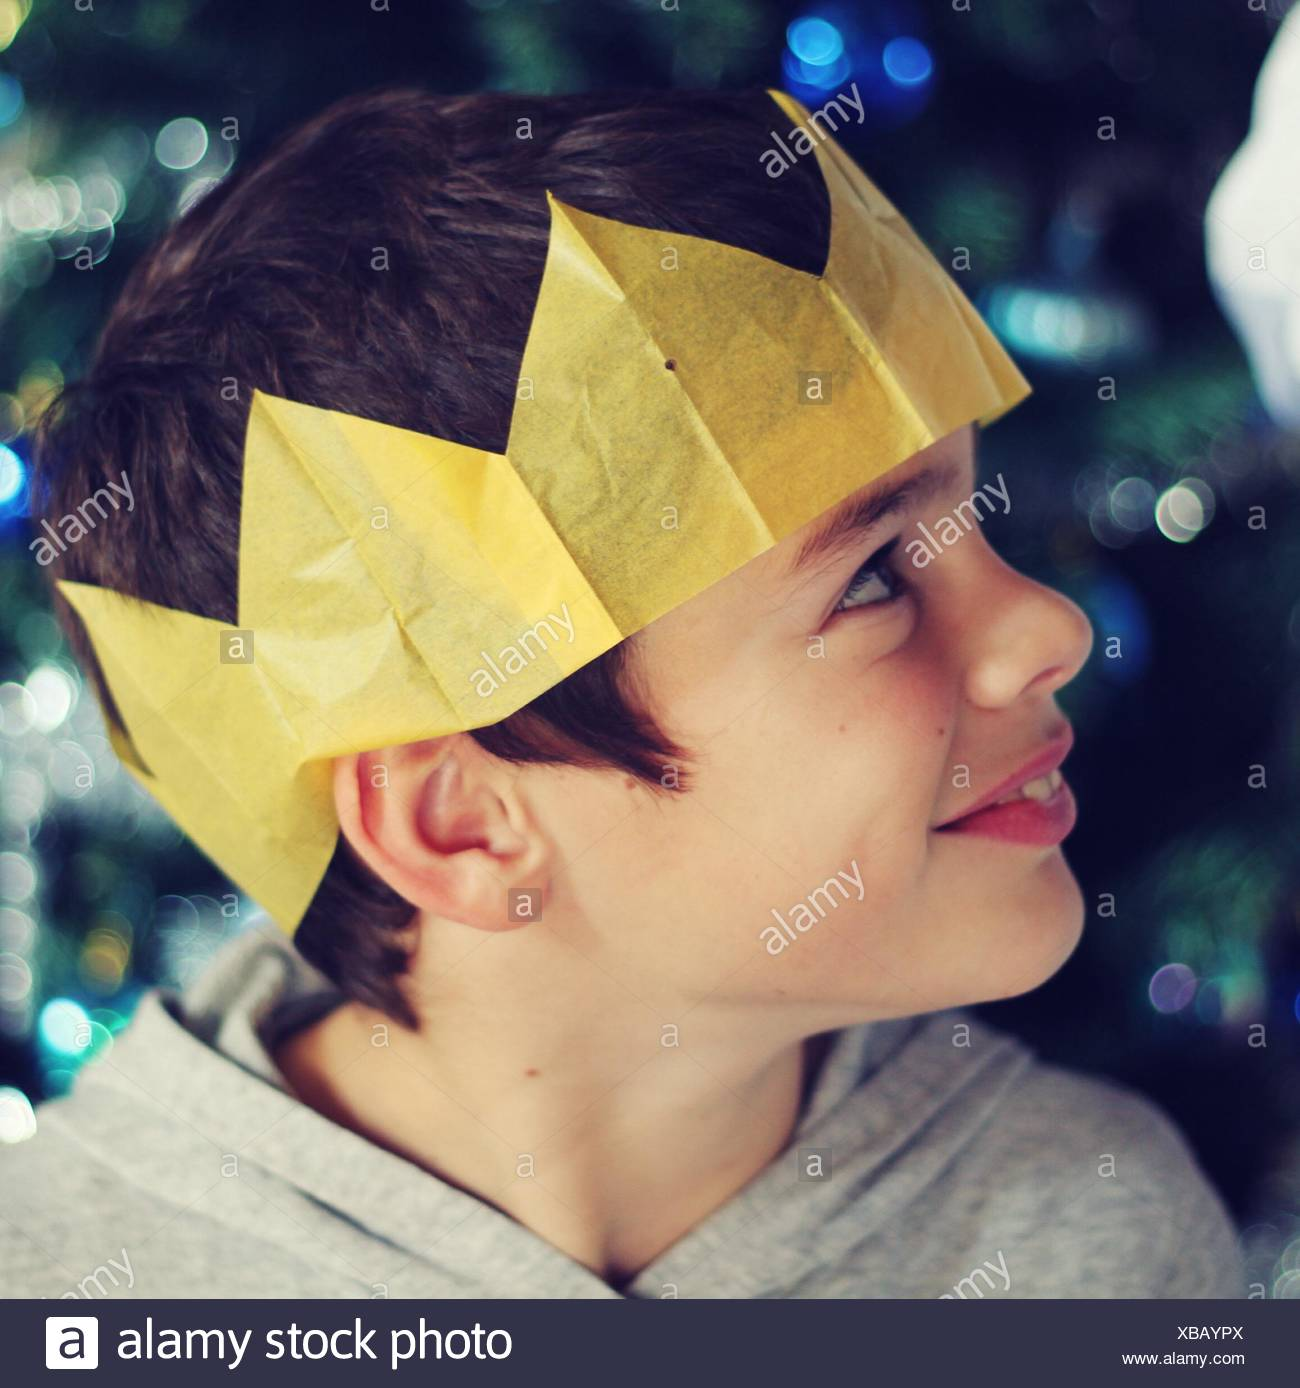 909507dc9c81d Close-Up Of Smiling Boy Wearing Paper Crown At Night During Christmas